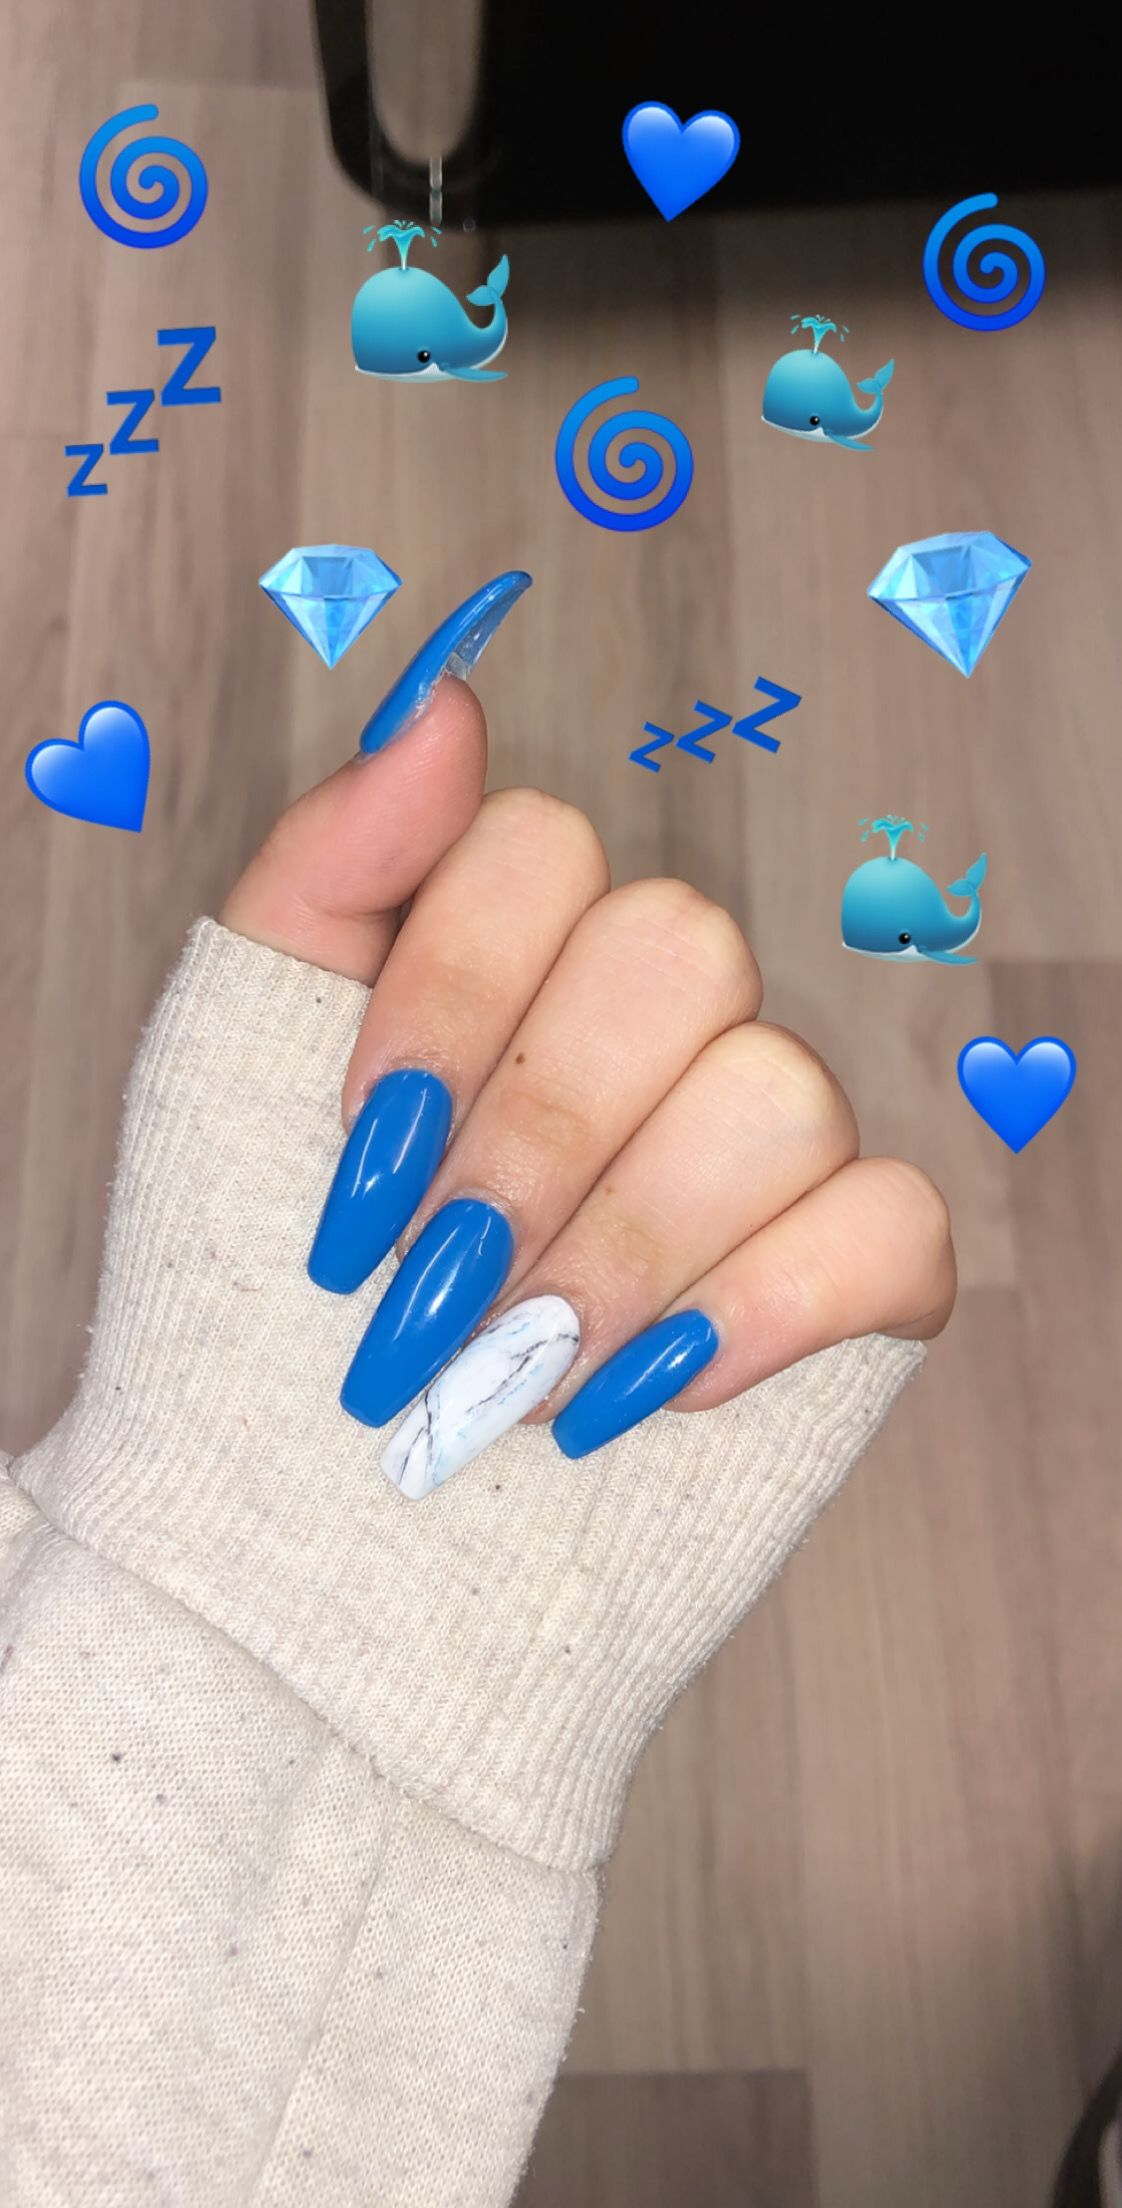 Pin By Jeanine Toonen On Nails Blue Acrylic Nails Marble Nail Designs Marble Acrylic Nails